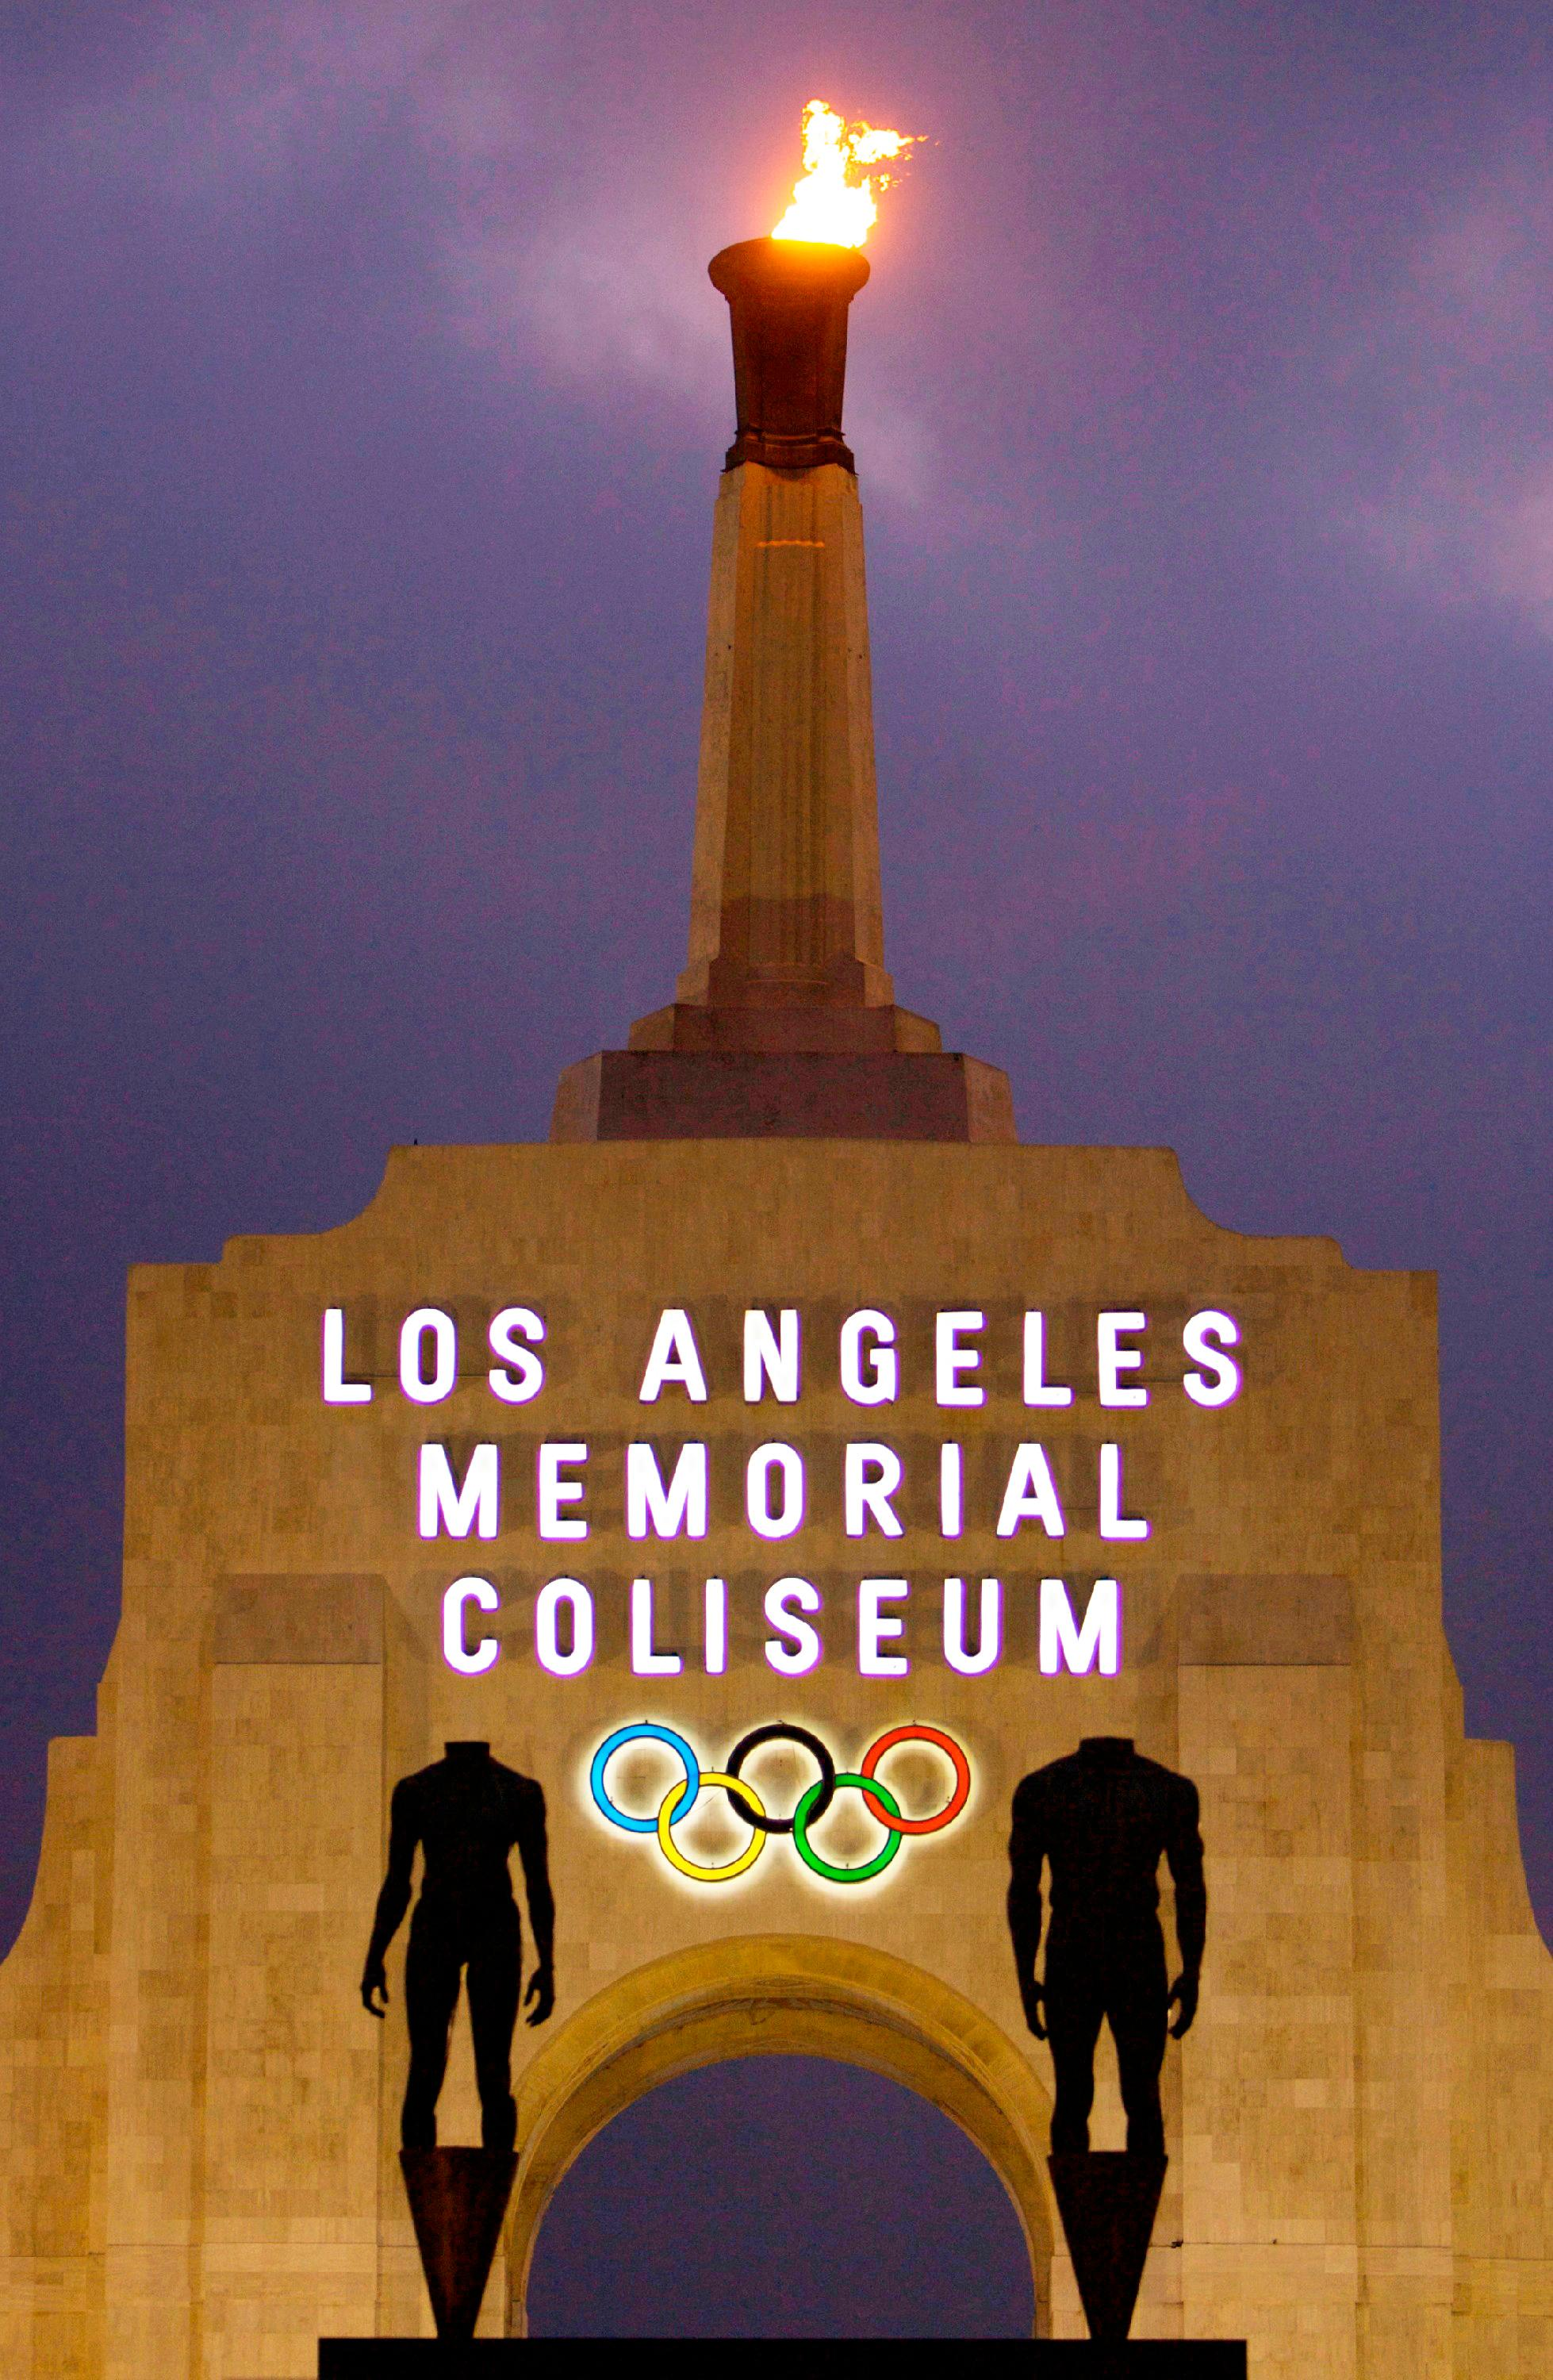 FILE - In this Feb. 13, 2008, file photo is the facade of Los Angeles Memorial Coliseum in Los Angeles. (AP Photo/Damian Dovarganes, File)